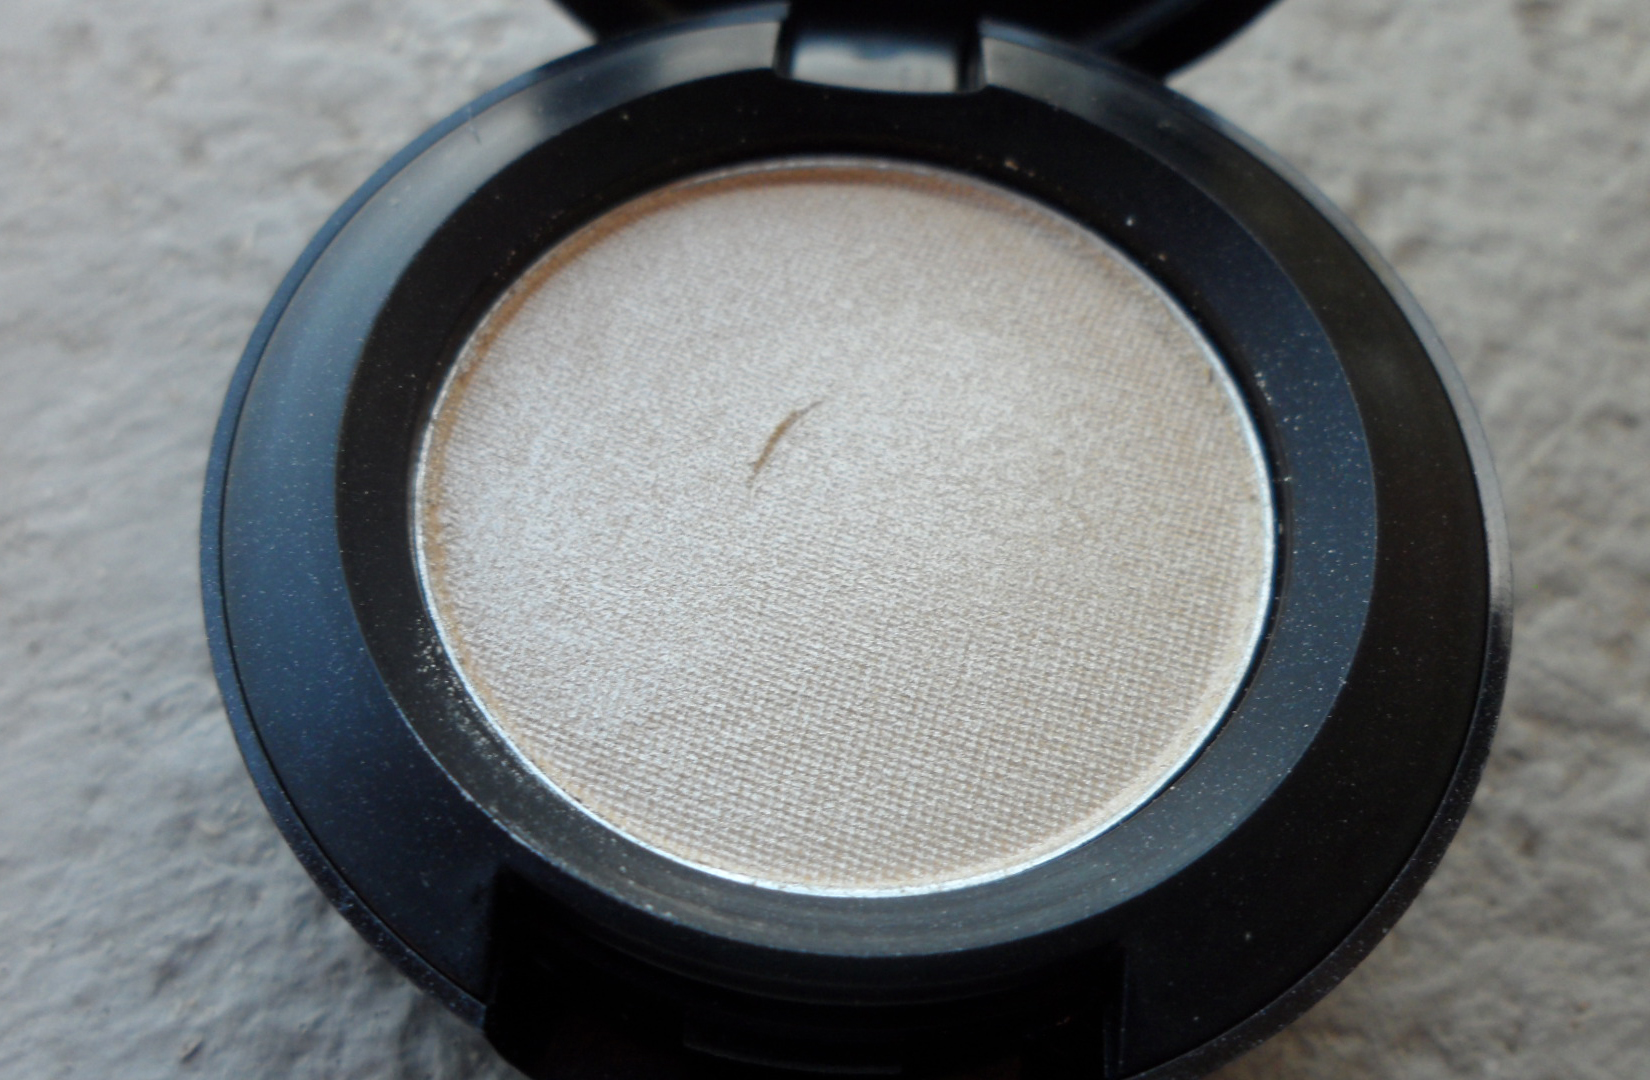 MAC Nylon looks like a pale yellow cold in the pan. it looks very subtle.